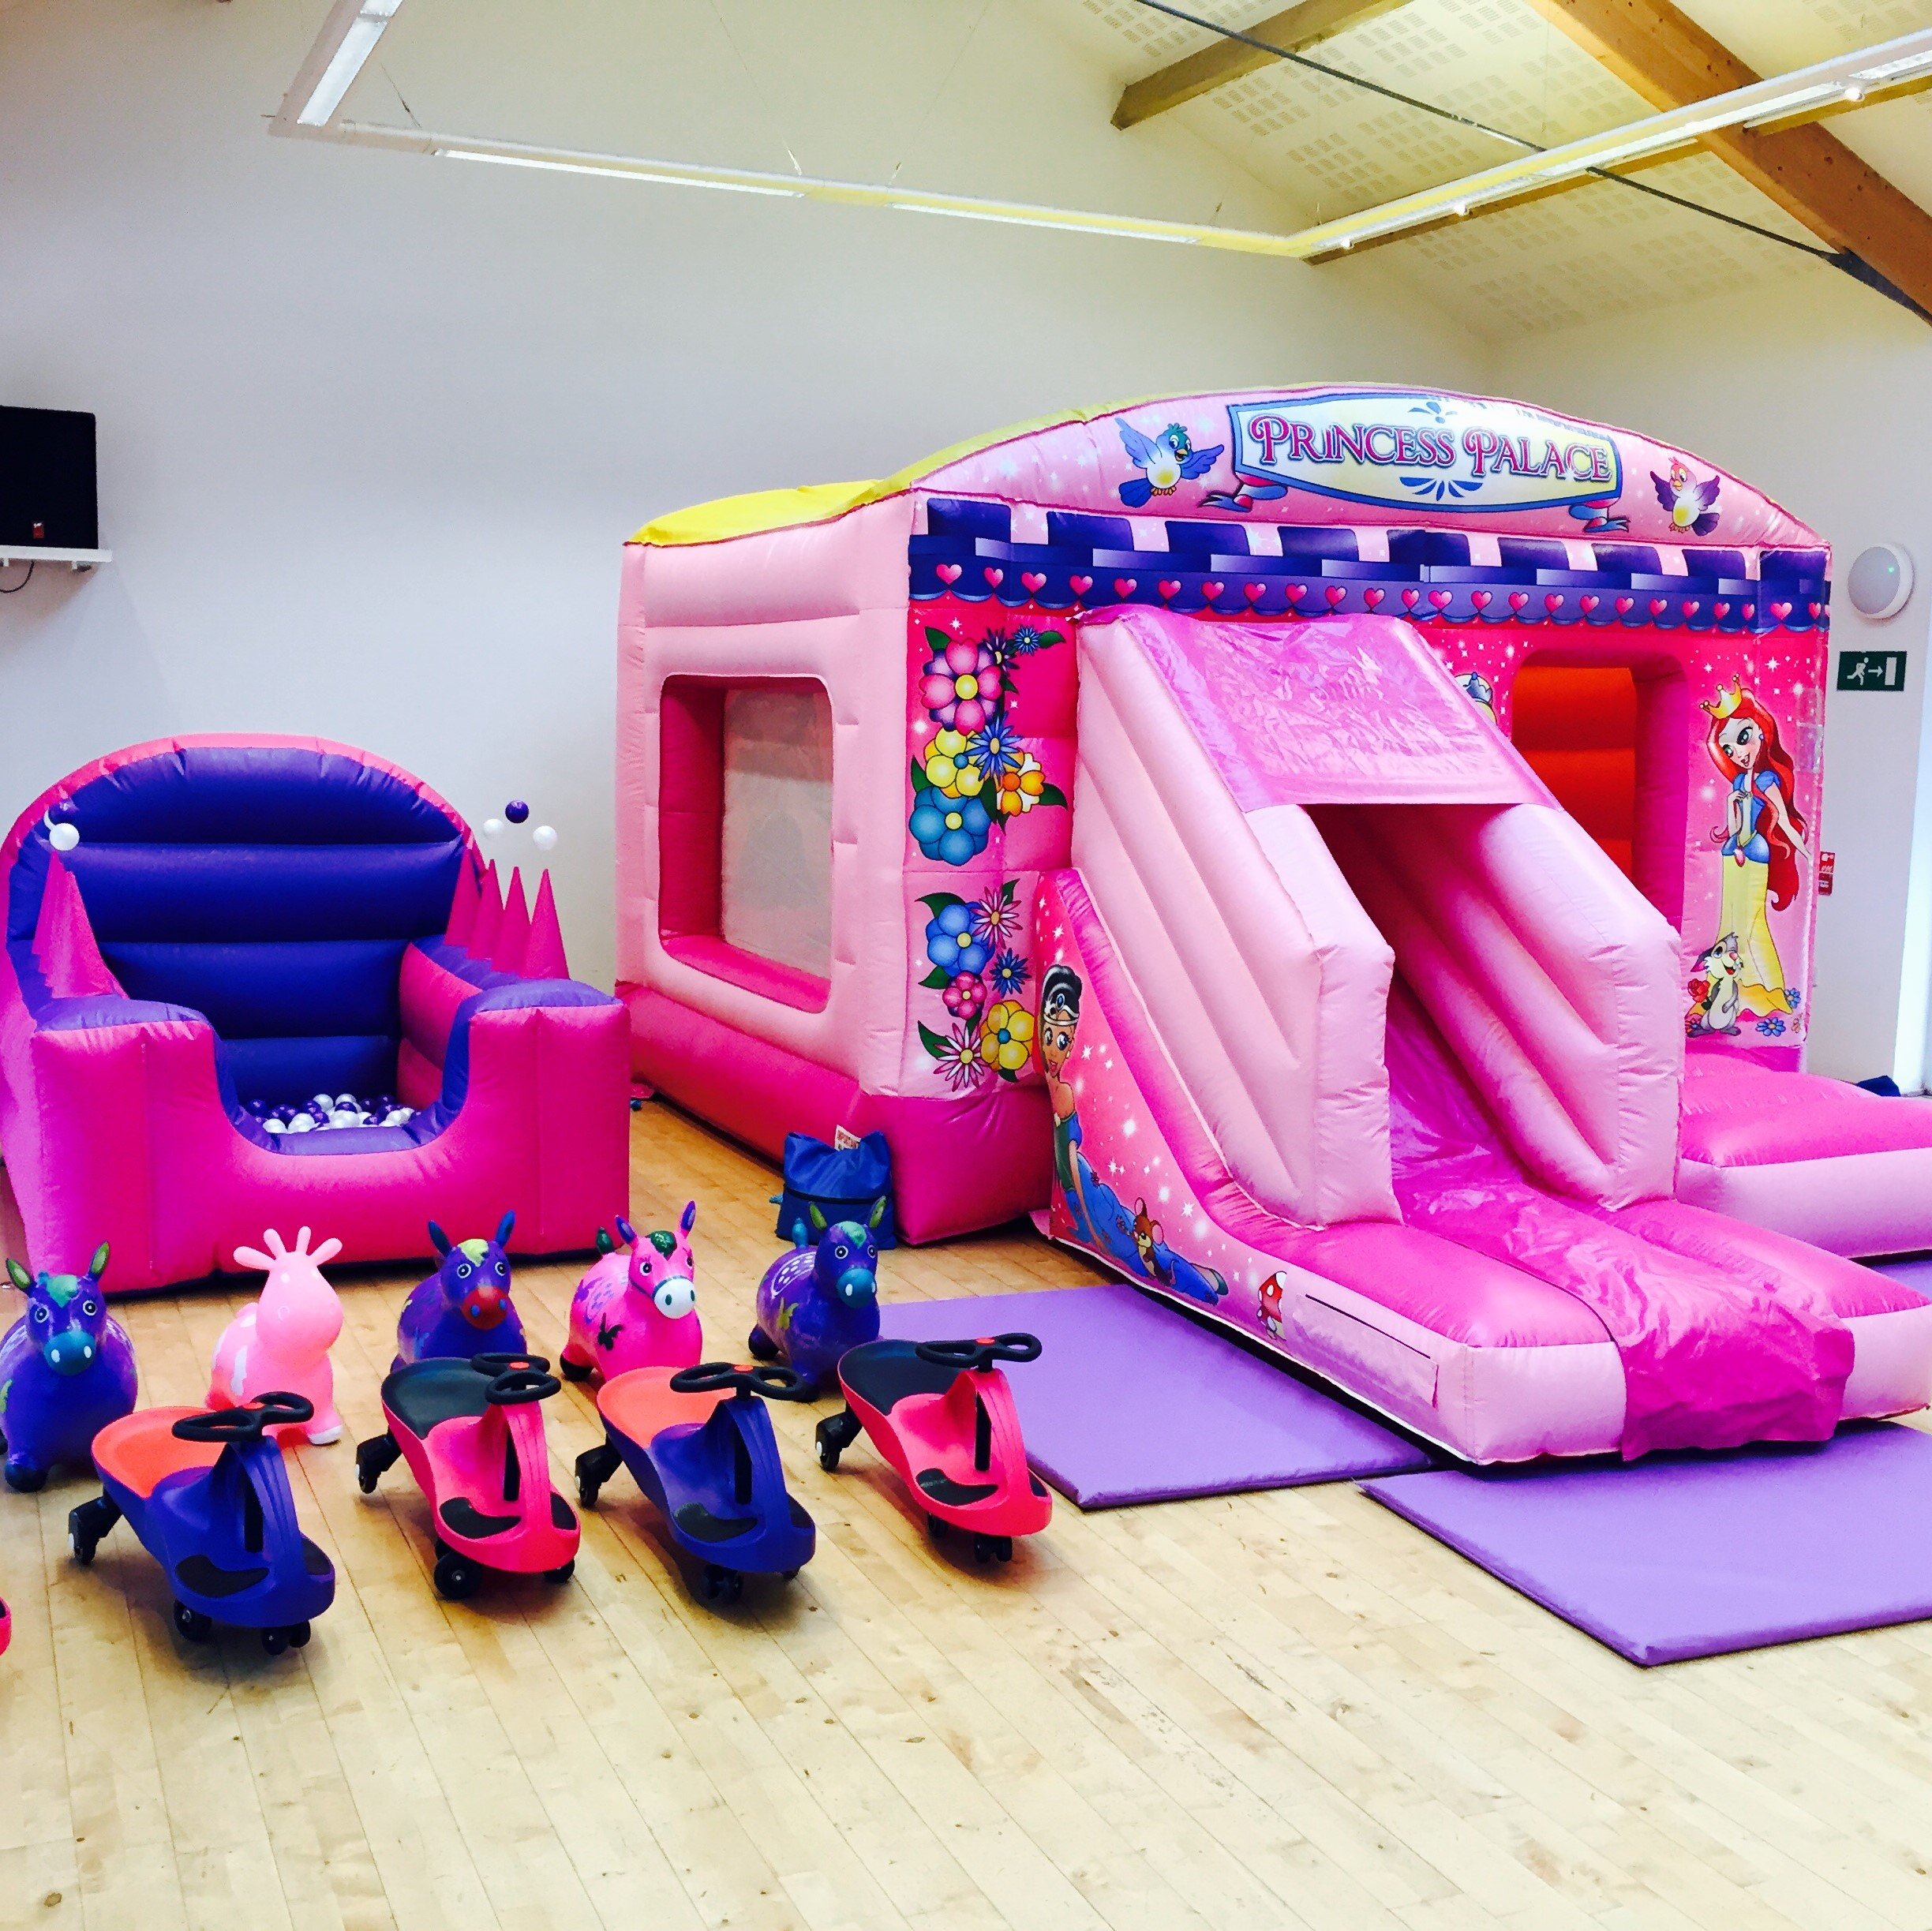 home - mane events - bouncy castle & rodeo bull hire.